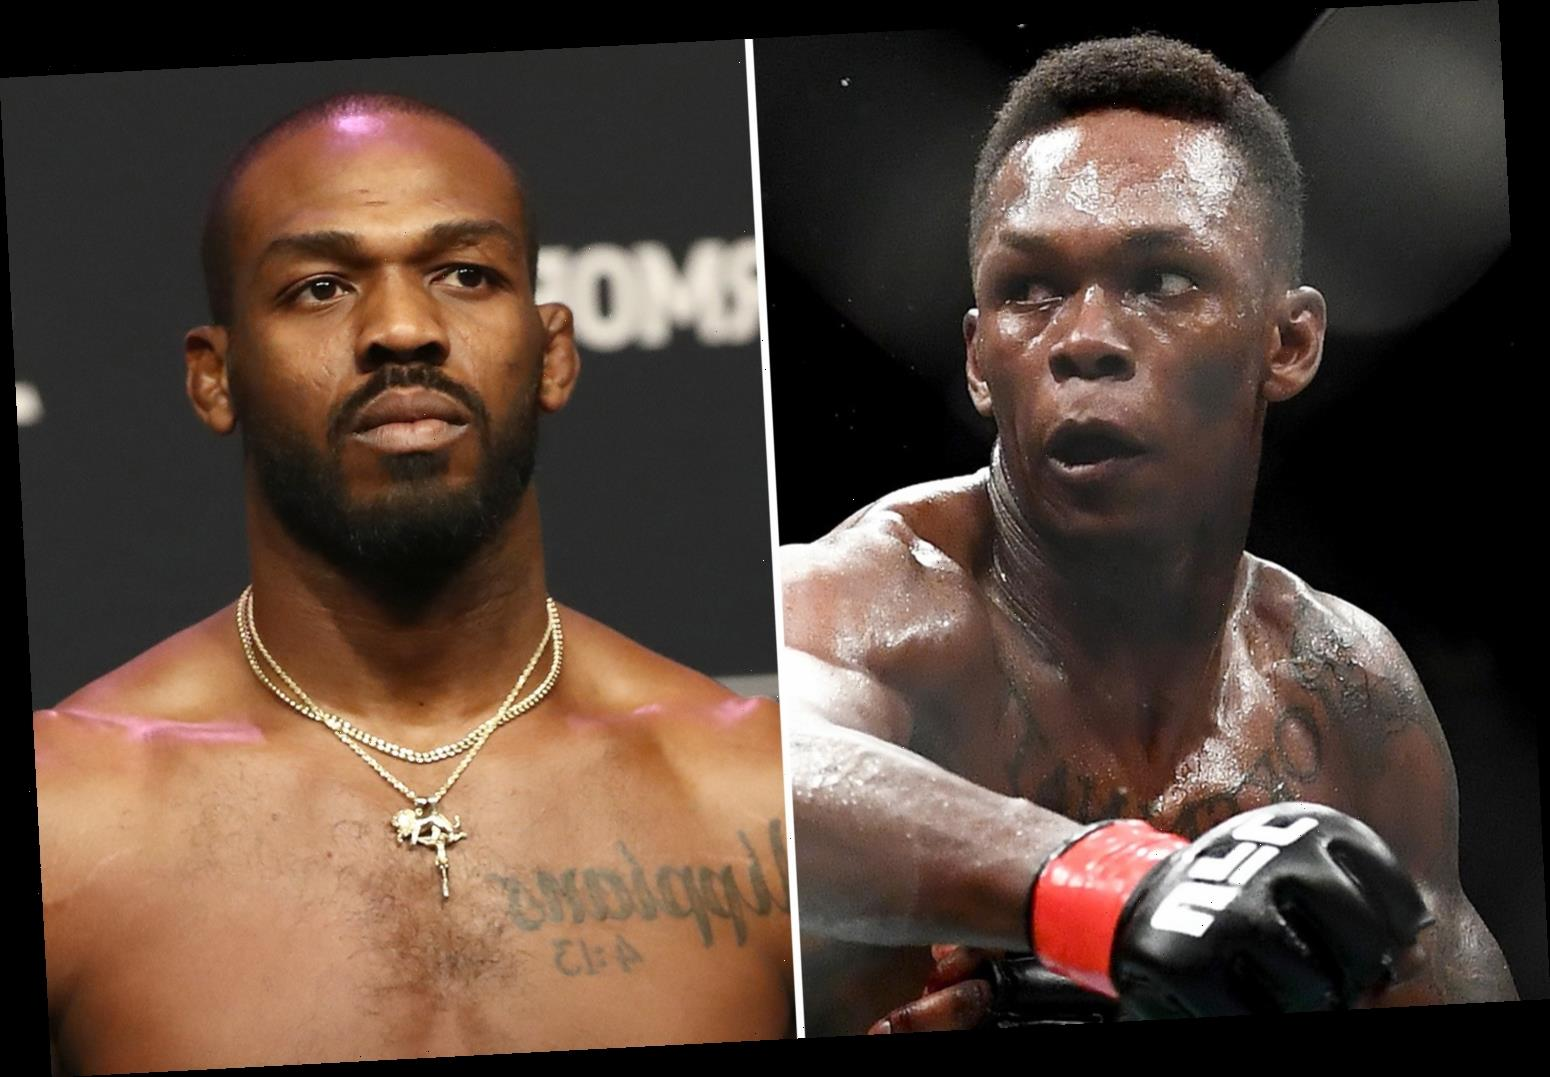 UFC star Jon Jones' last five fights prove he is 'washed up', claims Israel Adesanya as he taunts rival